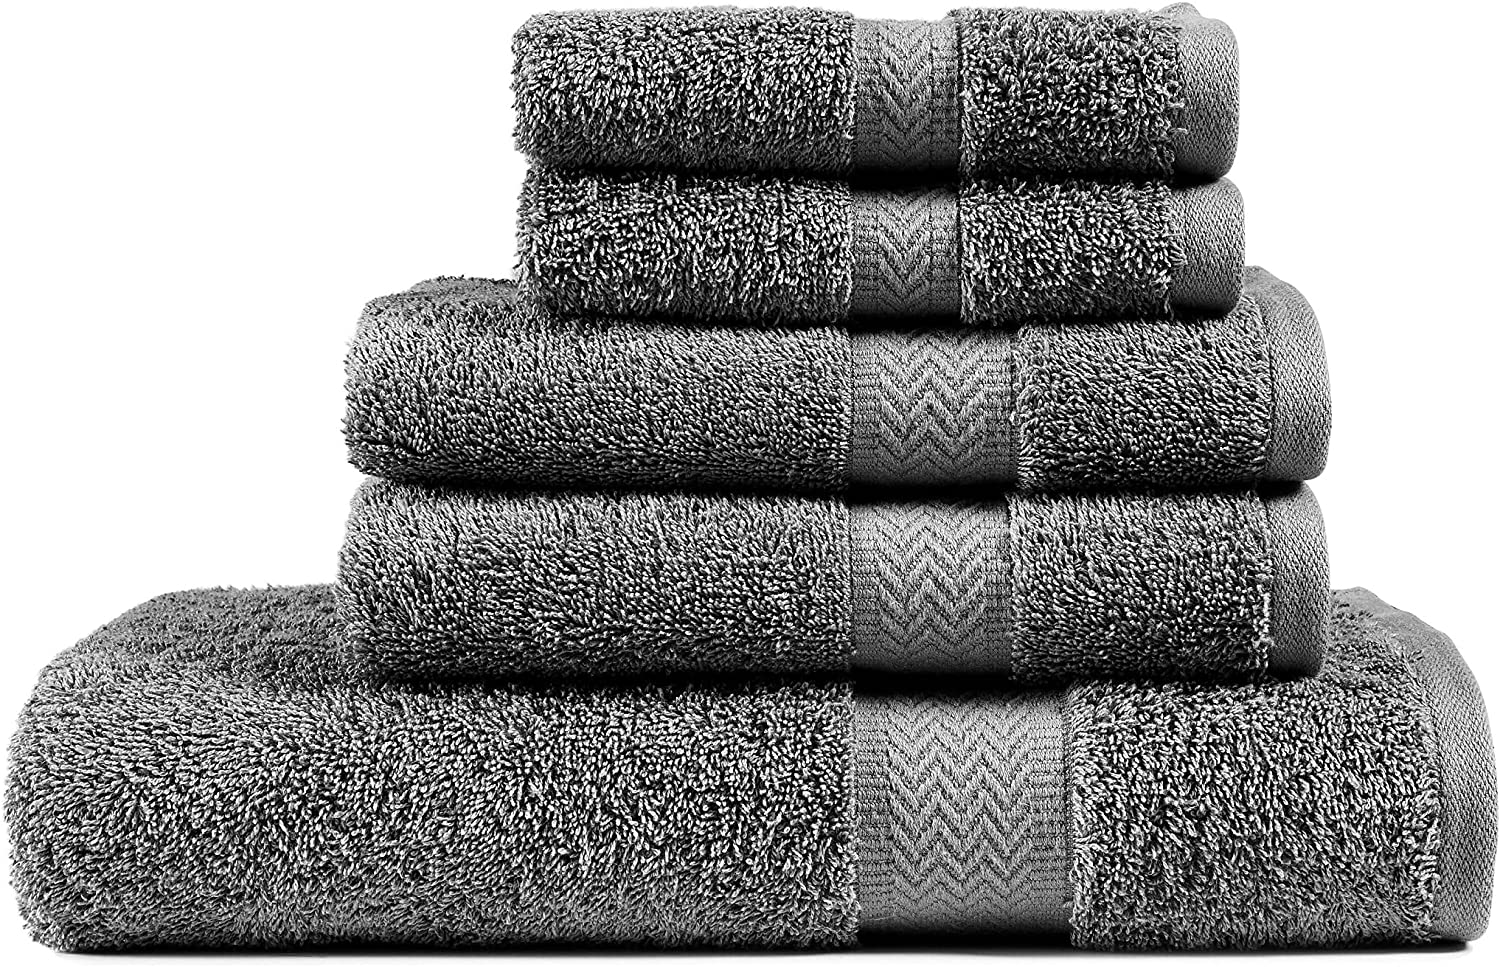 Bath Towels Set | Grey Towels | Chateau Home 5 Piece Towel Set | 1 Bath Towel, 2 Hand Towels, 2 Wash Cloths | 100% Cotton Towels, Extra Absorbent | Extra Soft, Quick Dry | 600 GSM - Grey